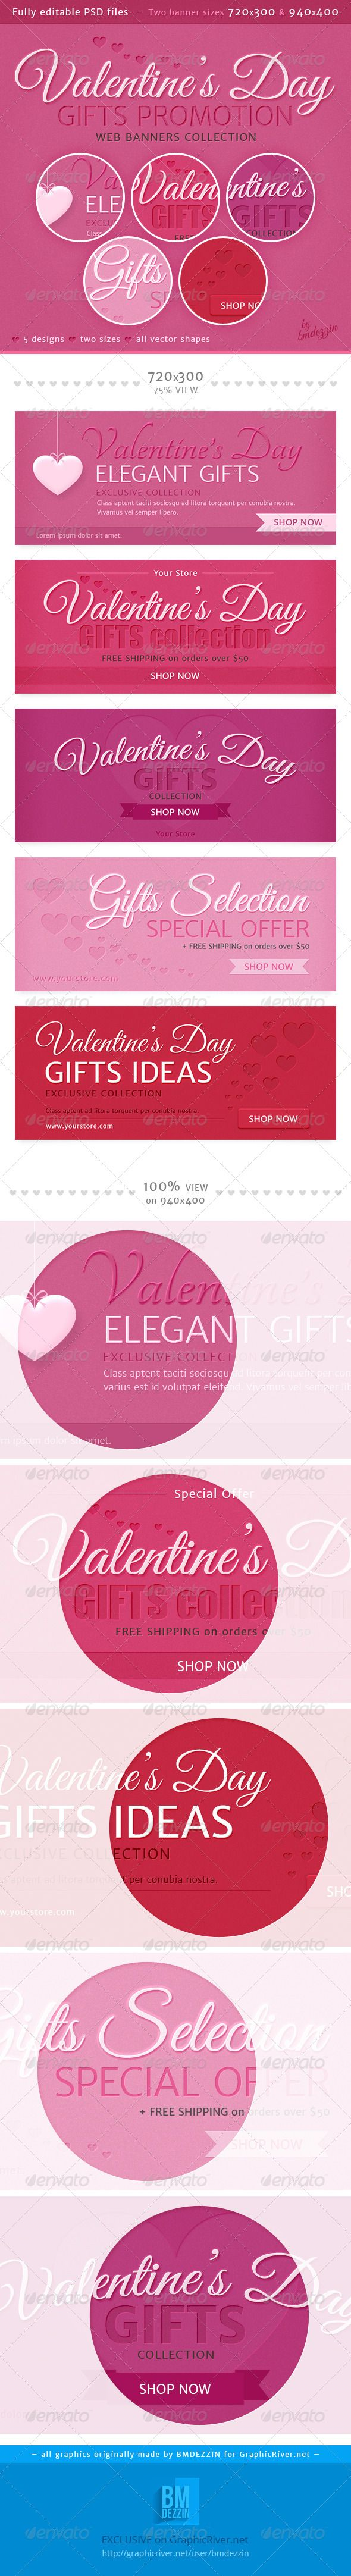 Valentine's Day Gifts Promotion Web Banners Template PSD | Buy and Download: http://graphicriver.net/item/valentines-day-gifts-promotion-web-banners/6728973?WT.ac=category_thumb&WT.z_author=bmdezzin&ref=ksioks